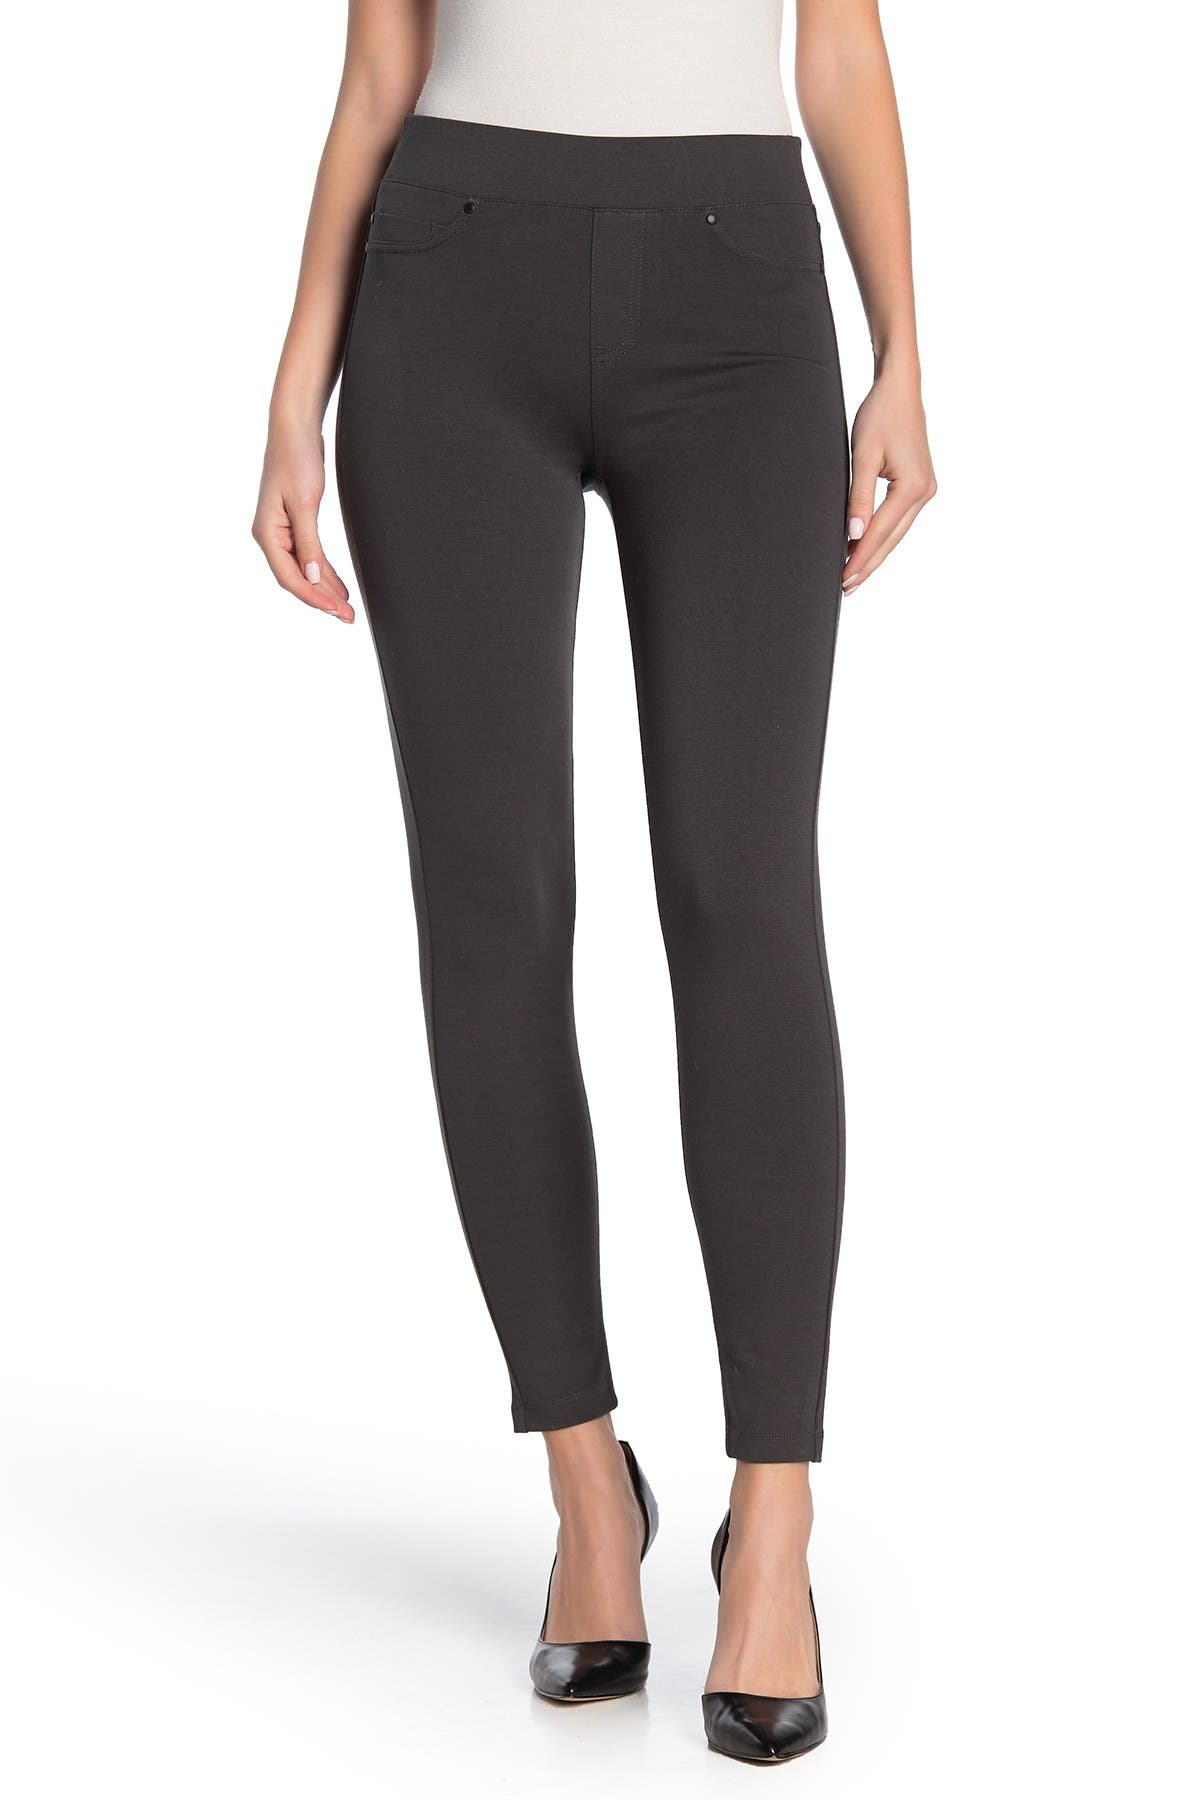 Image of Liverpool Jeans Co Pull-On Knit Leggings